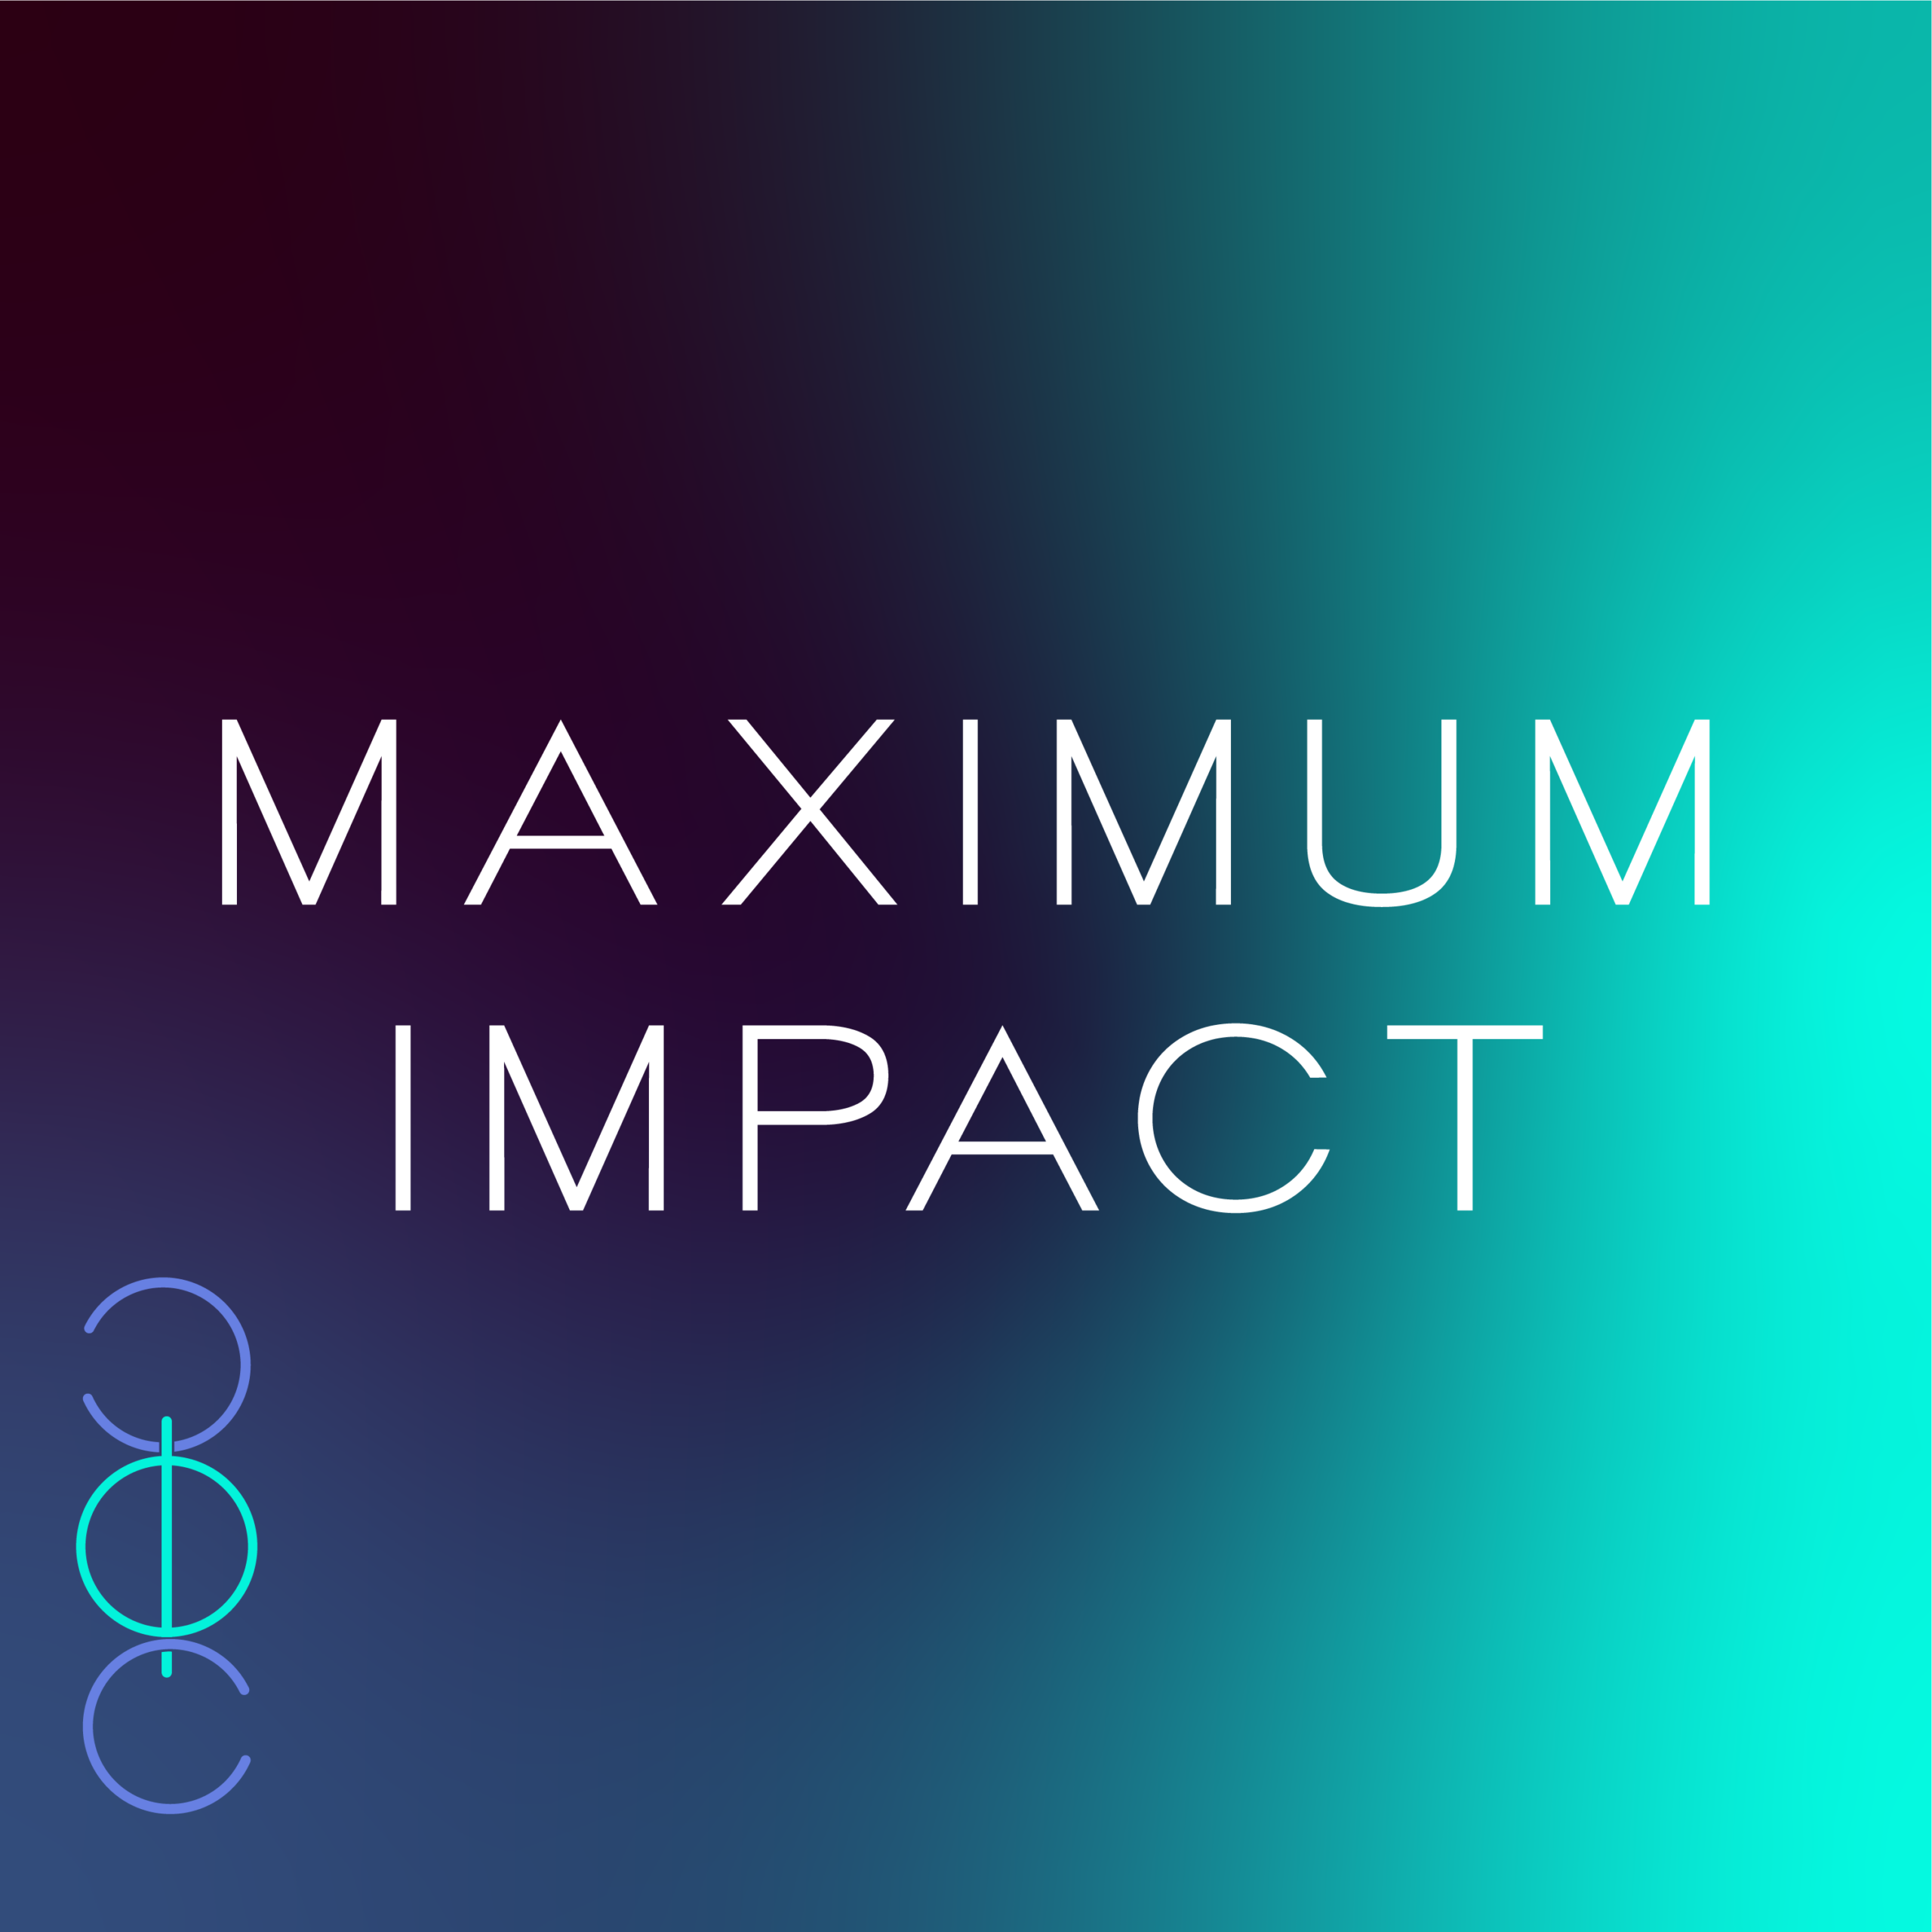 Maximum Impact Immediate Impact, Consultancy and Coaching Programme for Businesses. Consultancy and Coaching